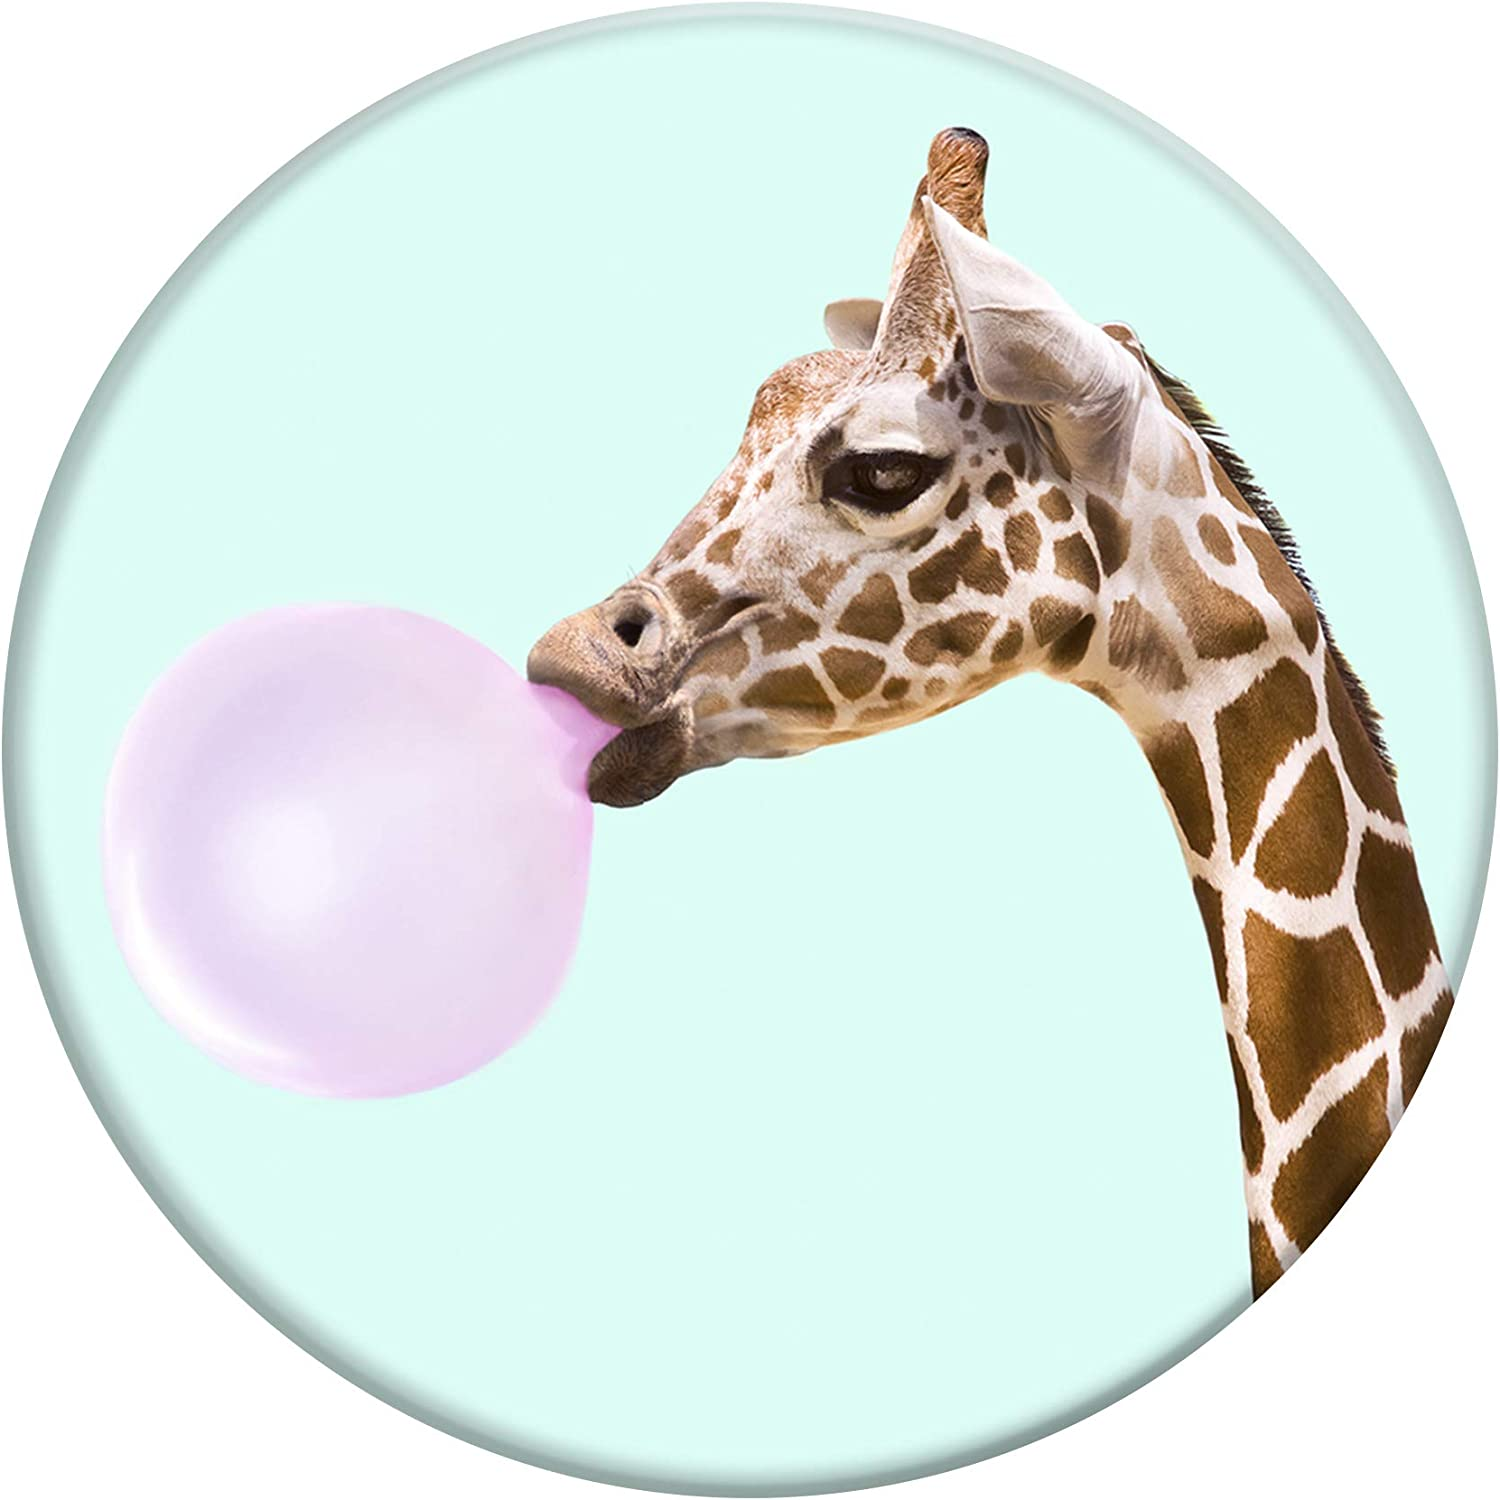 Collapsible Grip /& Stand for Phones and Tablets PopSockets Bubblegum Giraffe